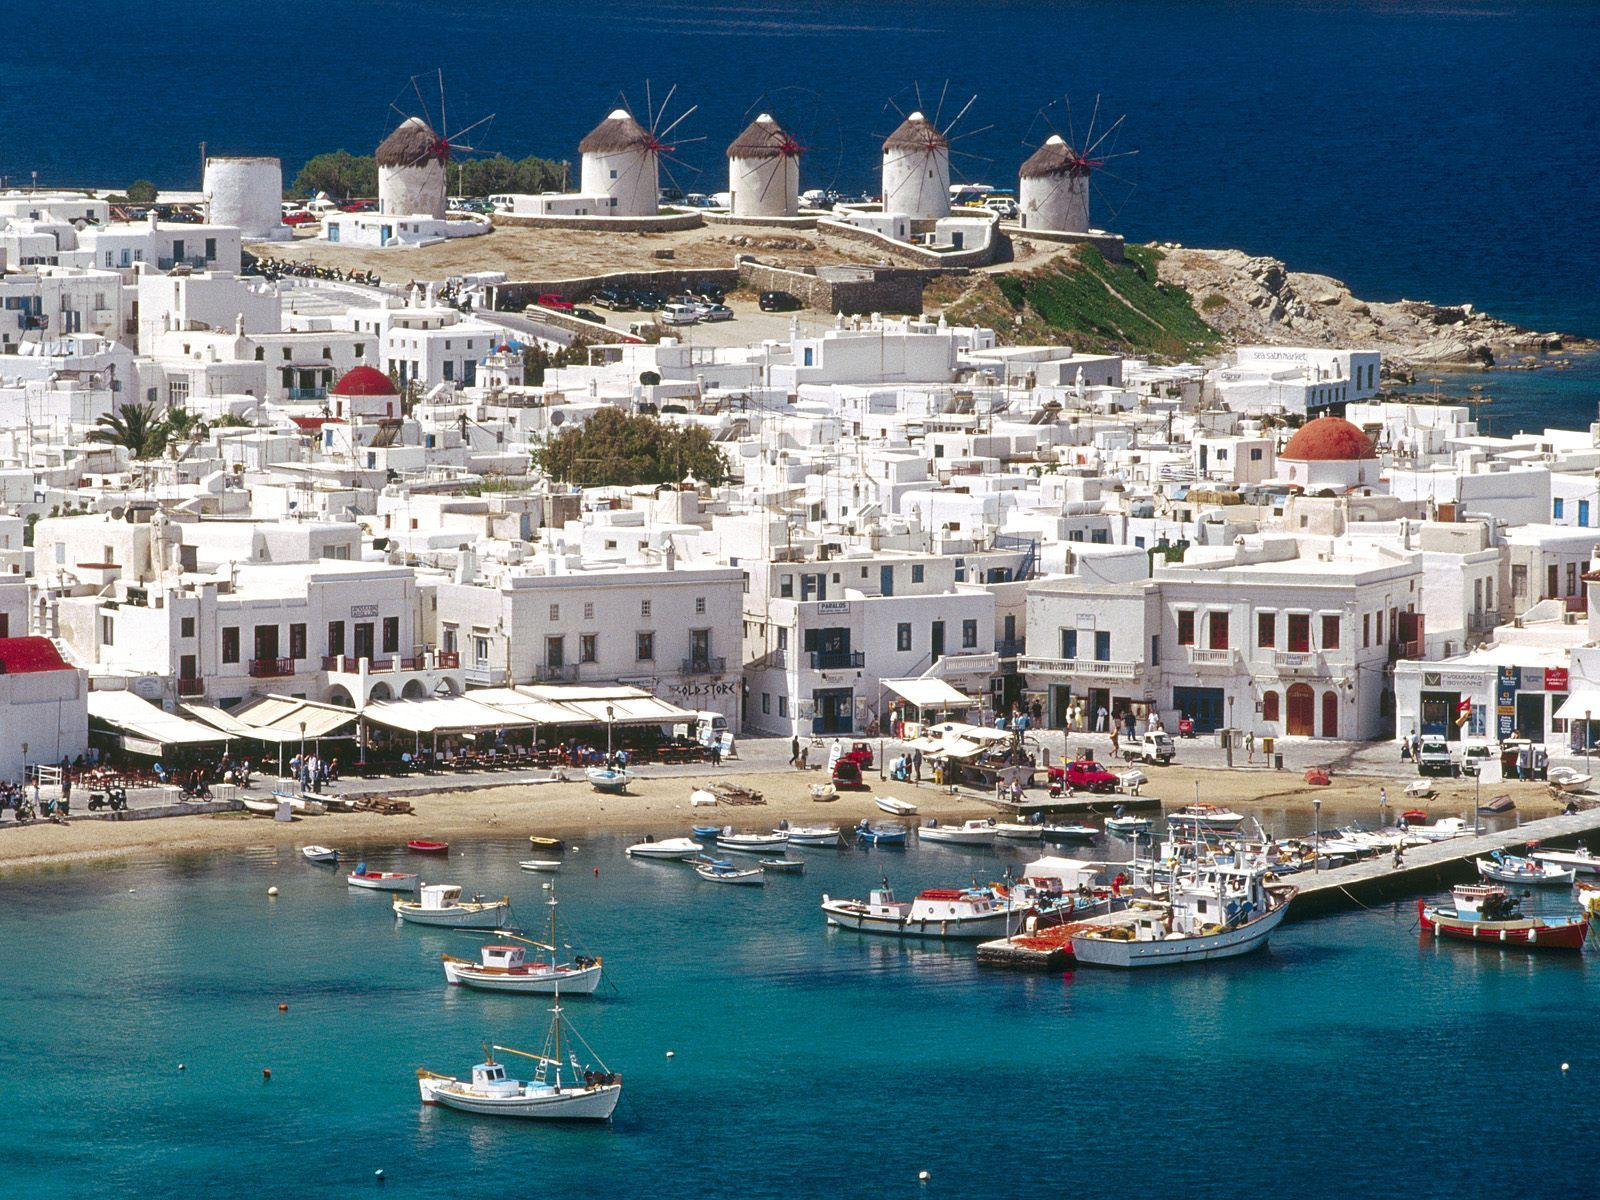 Mykonos-greek-islands-15723577-1600-1200.jpg